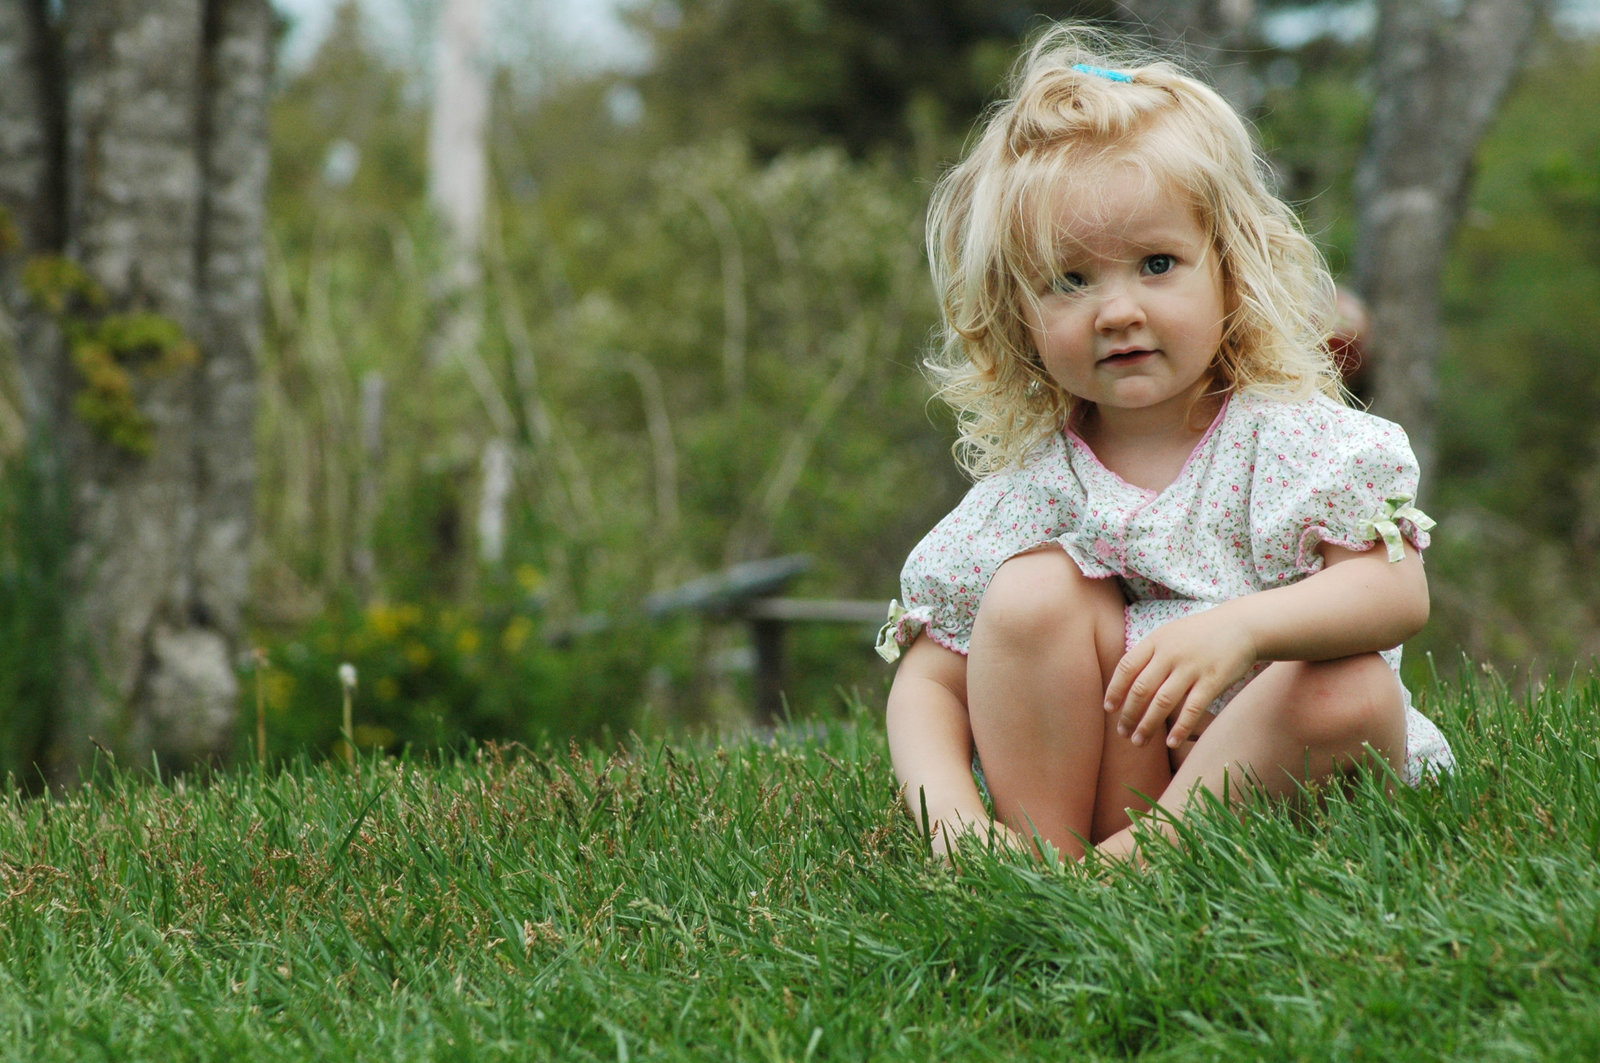 RJ Earle little girl in grass Nova Scotia Portraits by Melissa E Earle  Mee